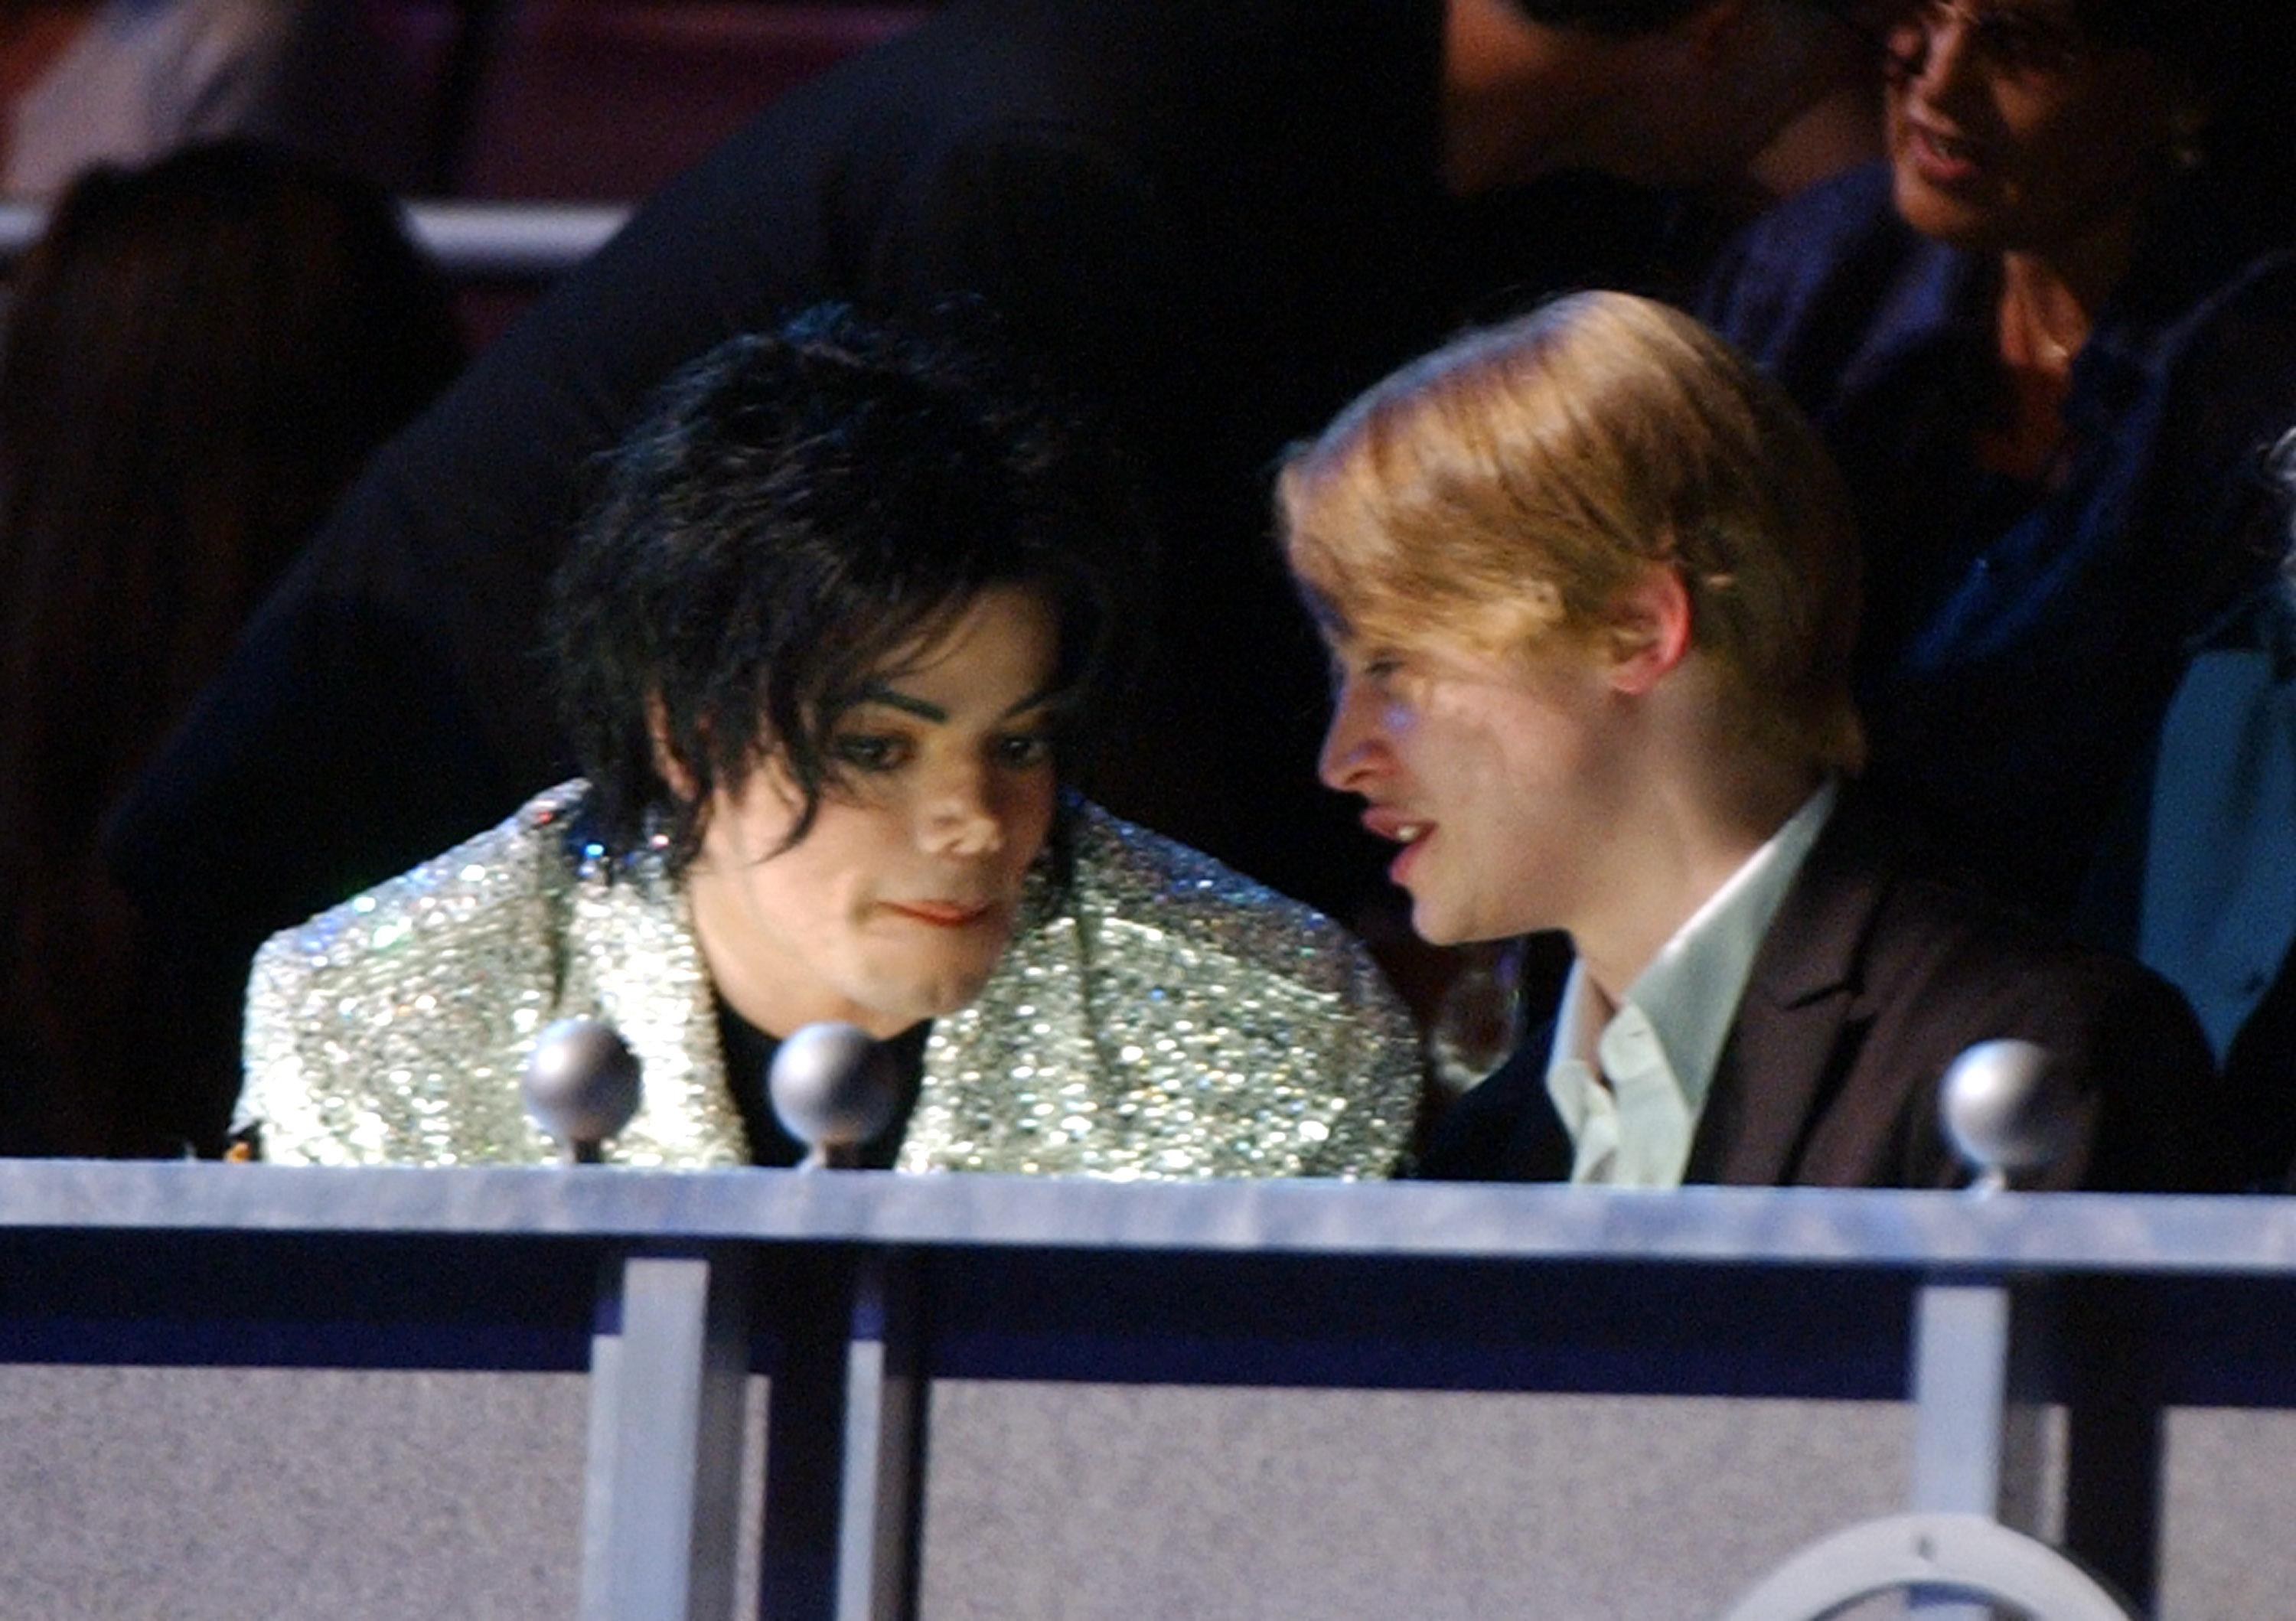 Macauley Culkin on Michael Jackson: 'He never did anything to me'